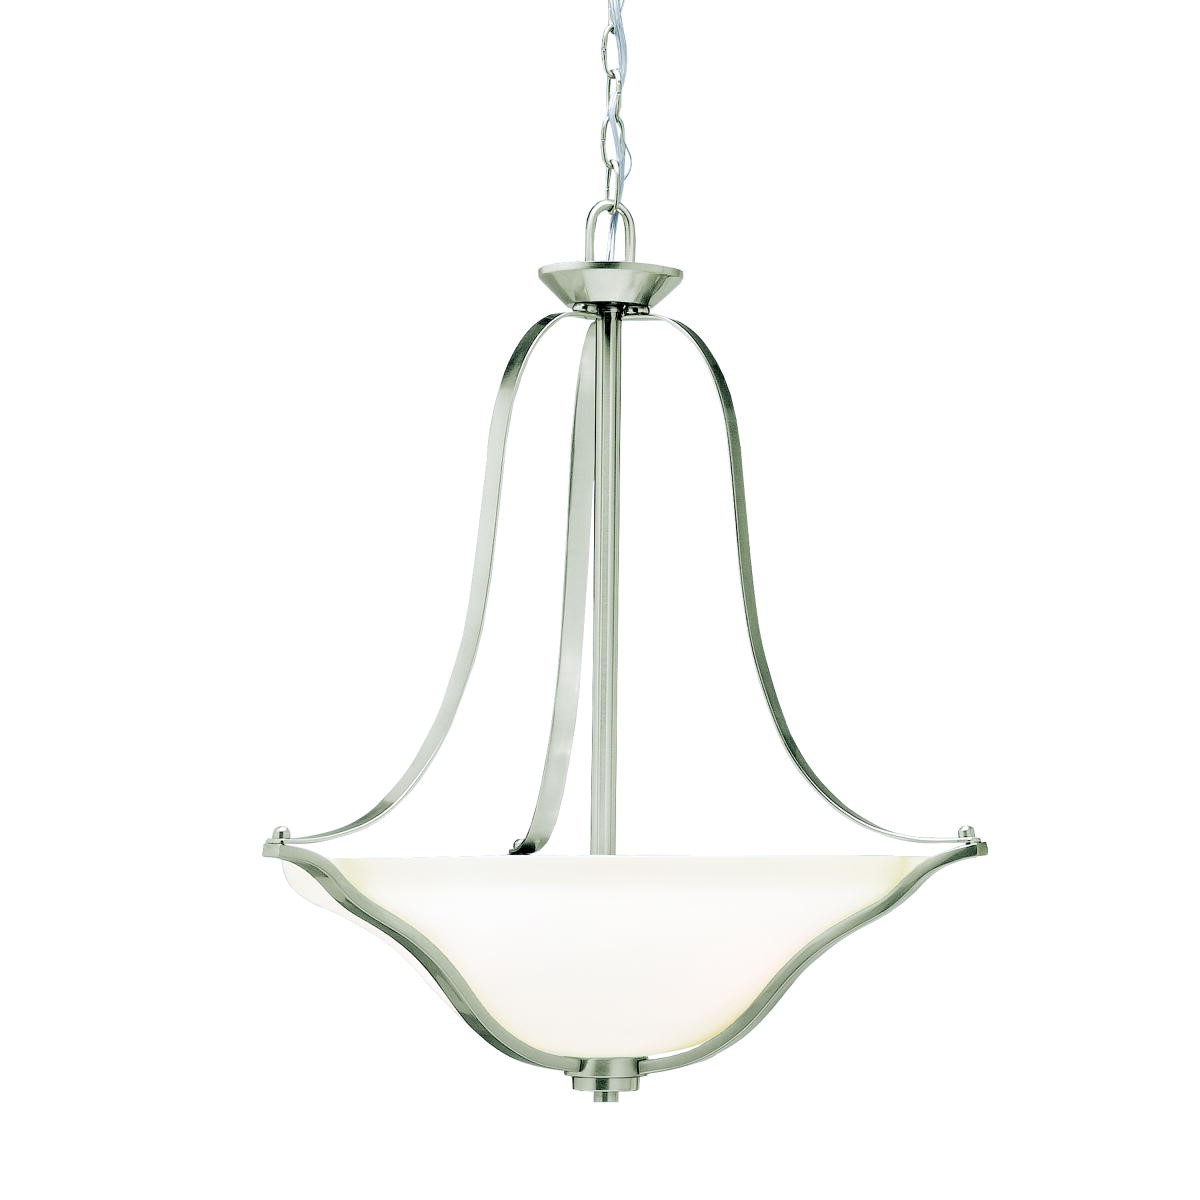 Kichler Langford Langford LED Three-Light Pendant Light with Satin Etched White Steel Shade - Brushed Nickel (3384NIL18)